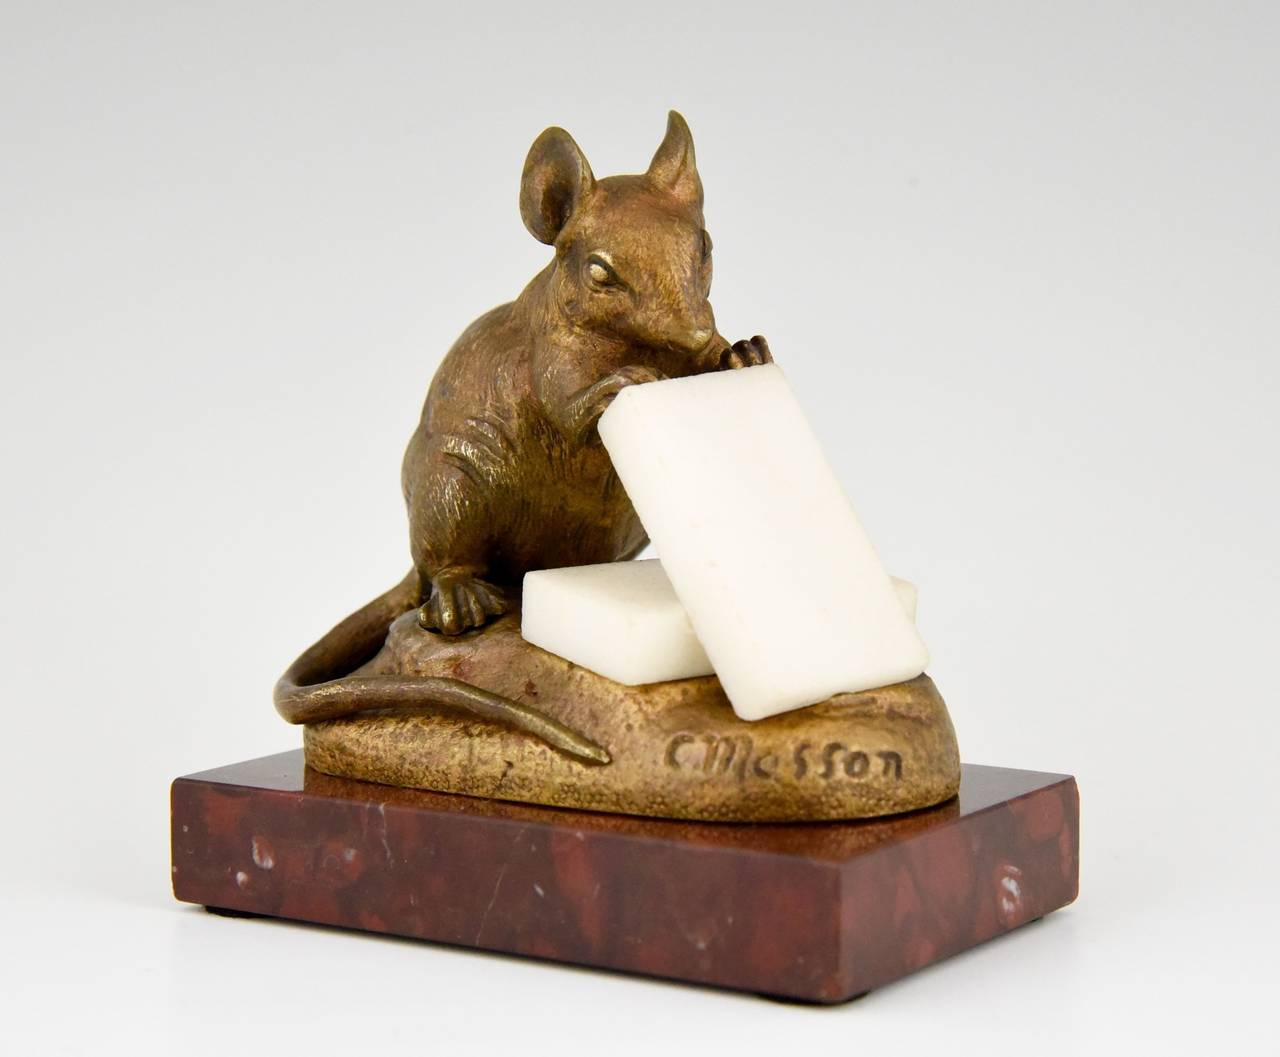 Description: Mouse eating cheese.  Artist/ Maker: Masson, Clovis.  Signature/ Marks: C. Masson. Style: Romantic.  Date: 1880.  Material: Bronze, alabaster on a red marble base. Origin: France.  Size: H. 3.7 inch x L. 3.7 inch. x W.